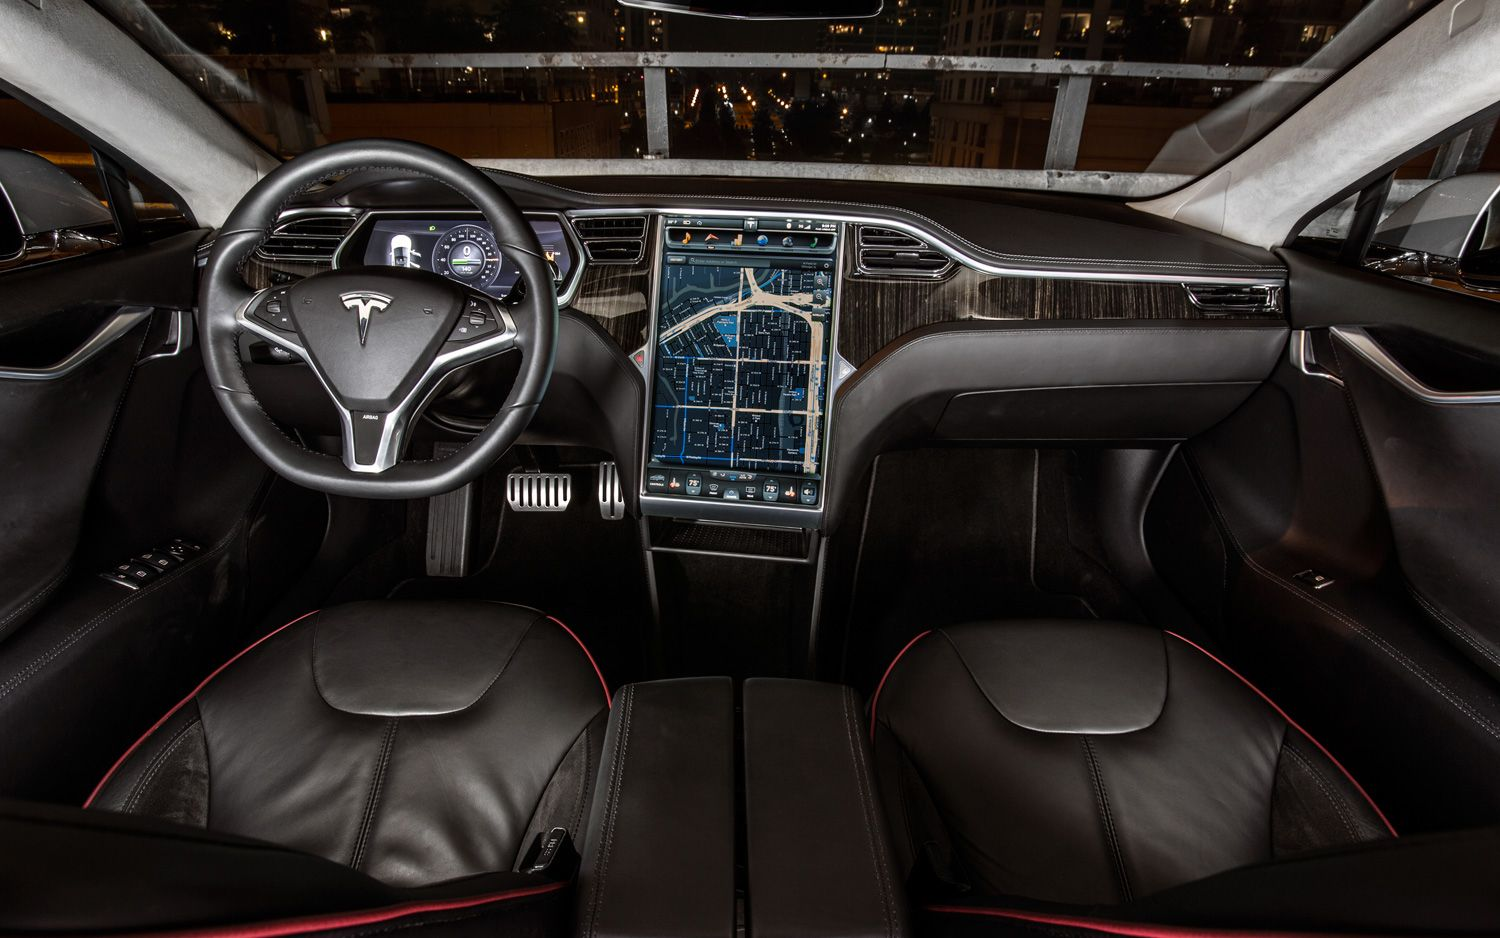 Tesla S Base Sedan 4 Door High Tech Gadgets Cars And Dream Cars